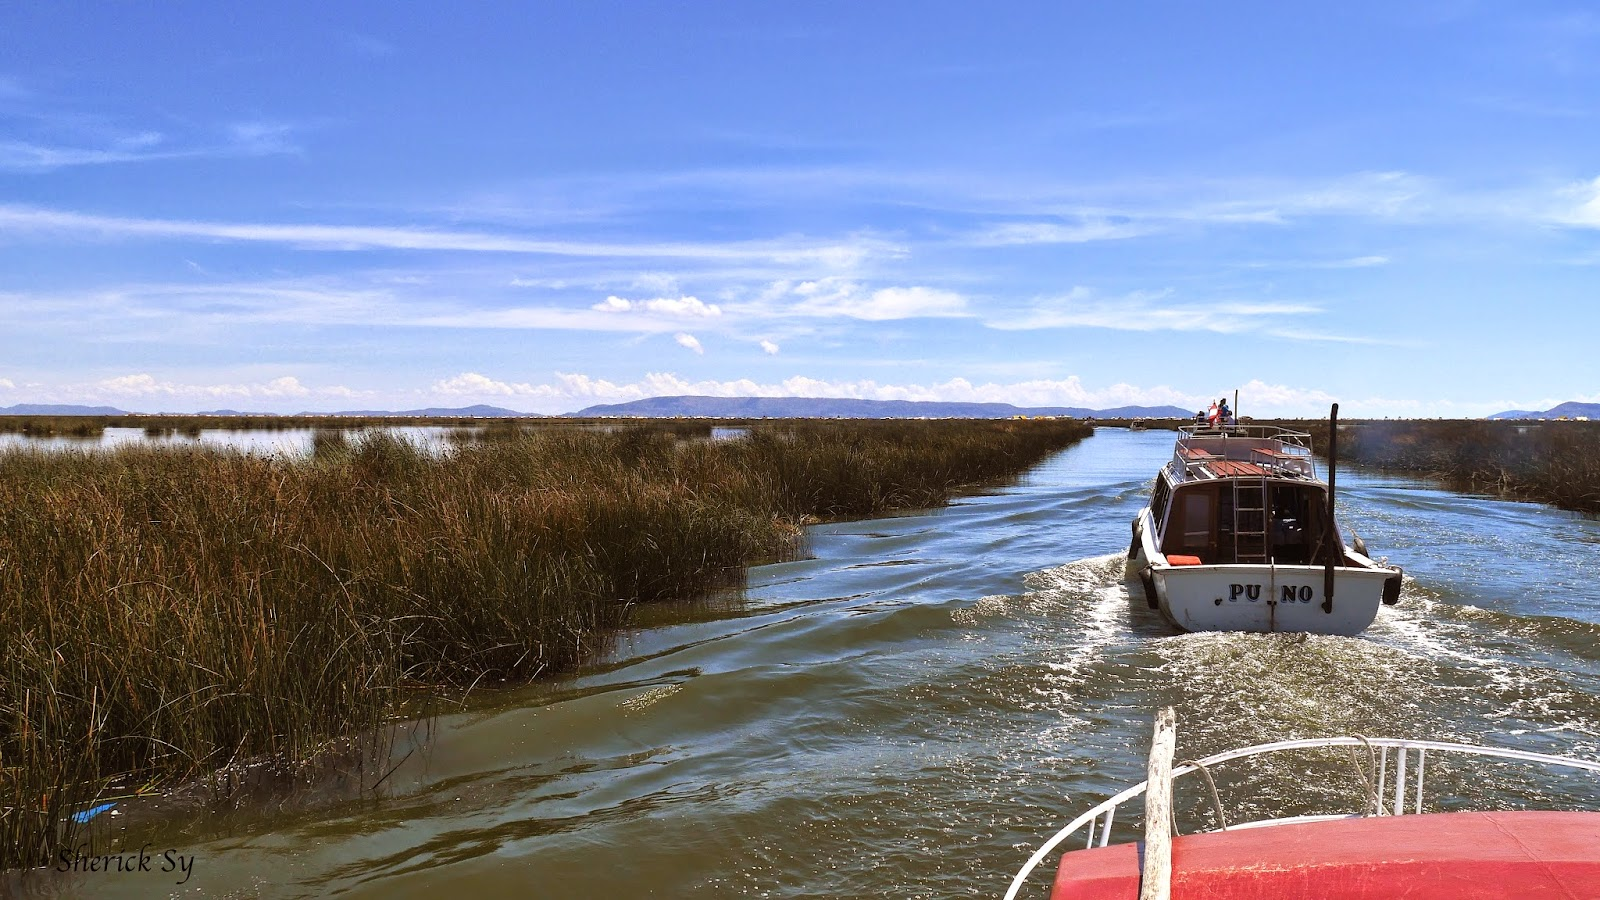 Motor Boats to Uros Islands, Lake Titicaca, Peru